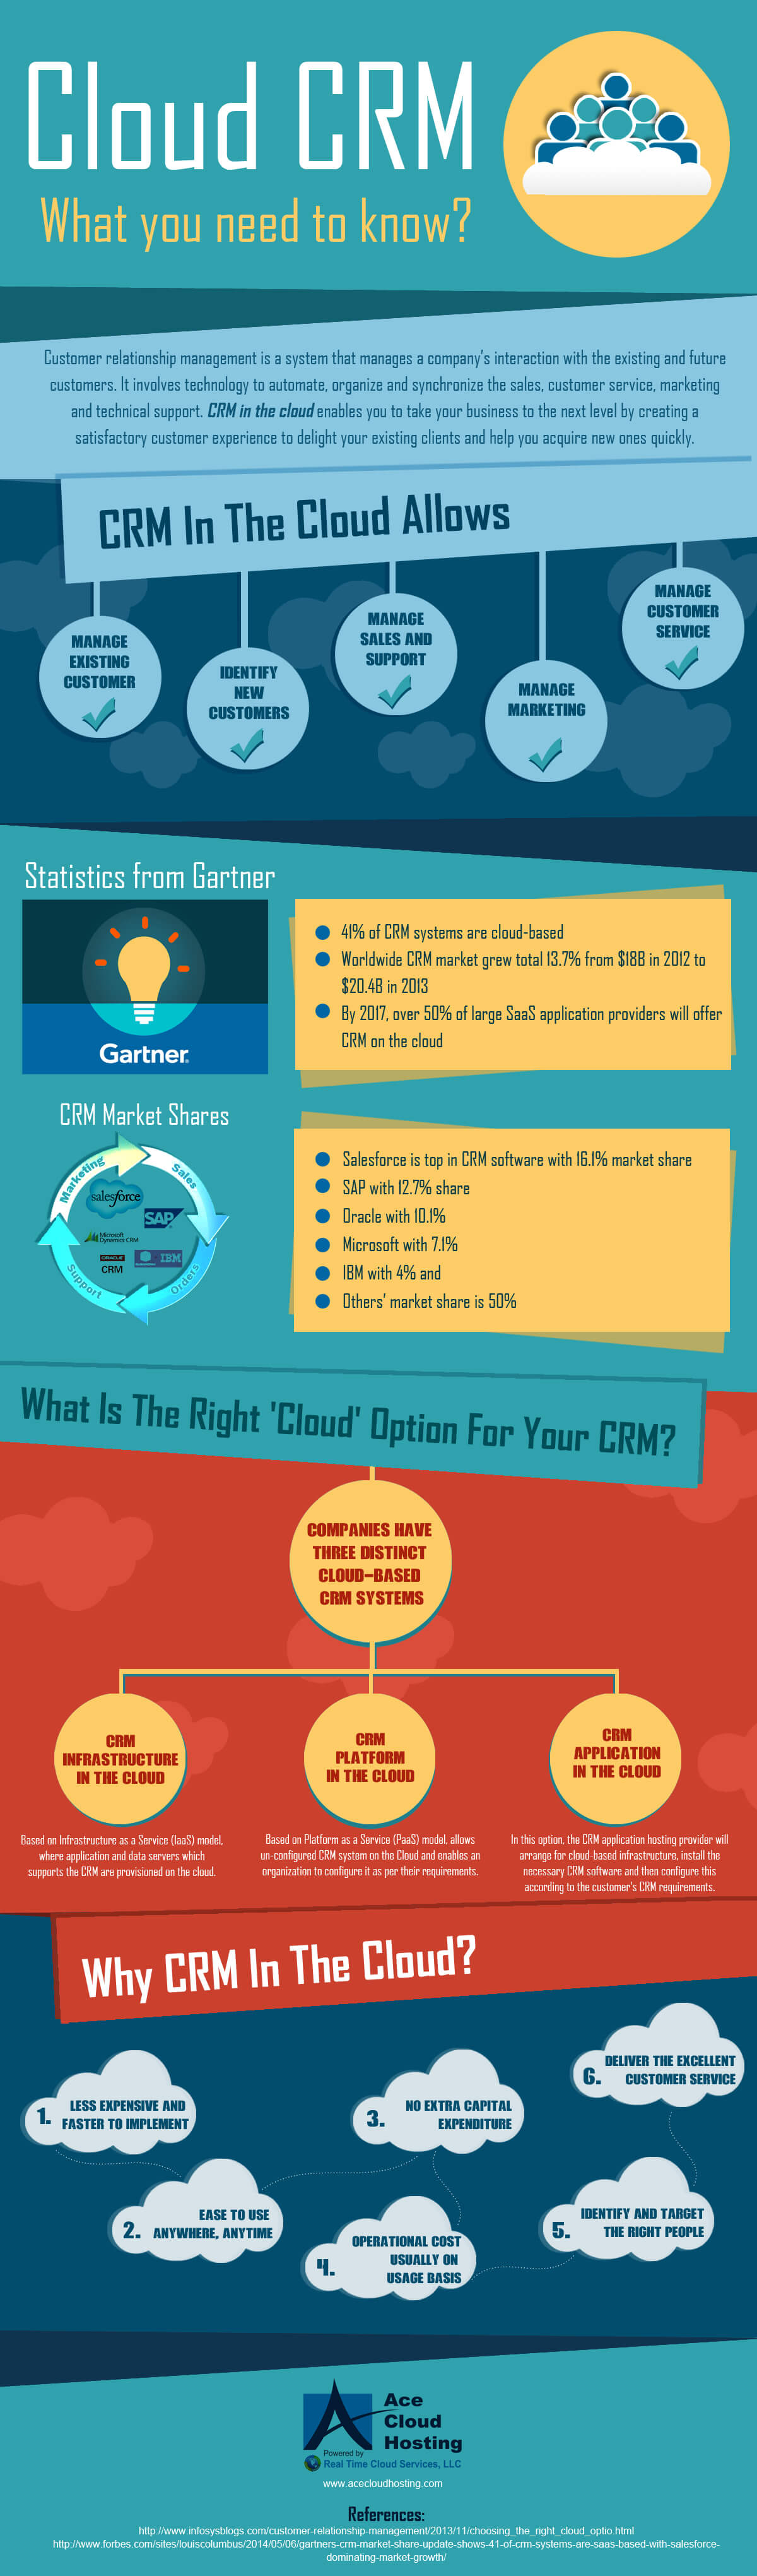 Why Your Business Needs Cloud-Based CRM? Infographic